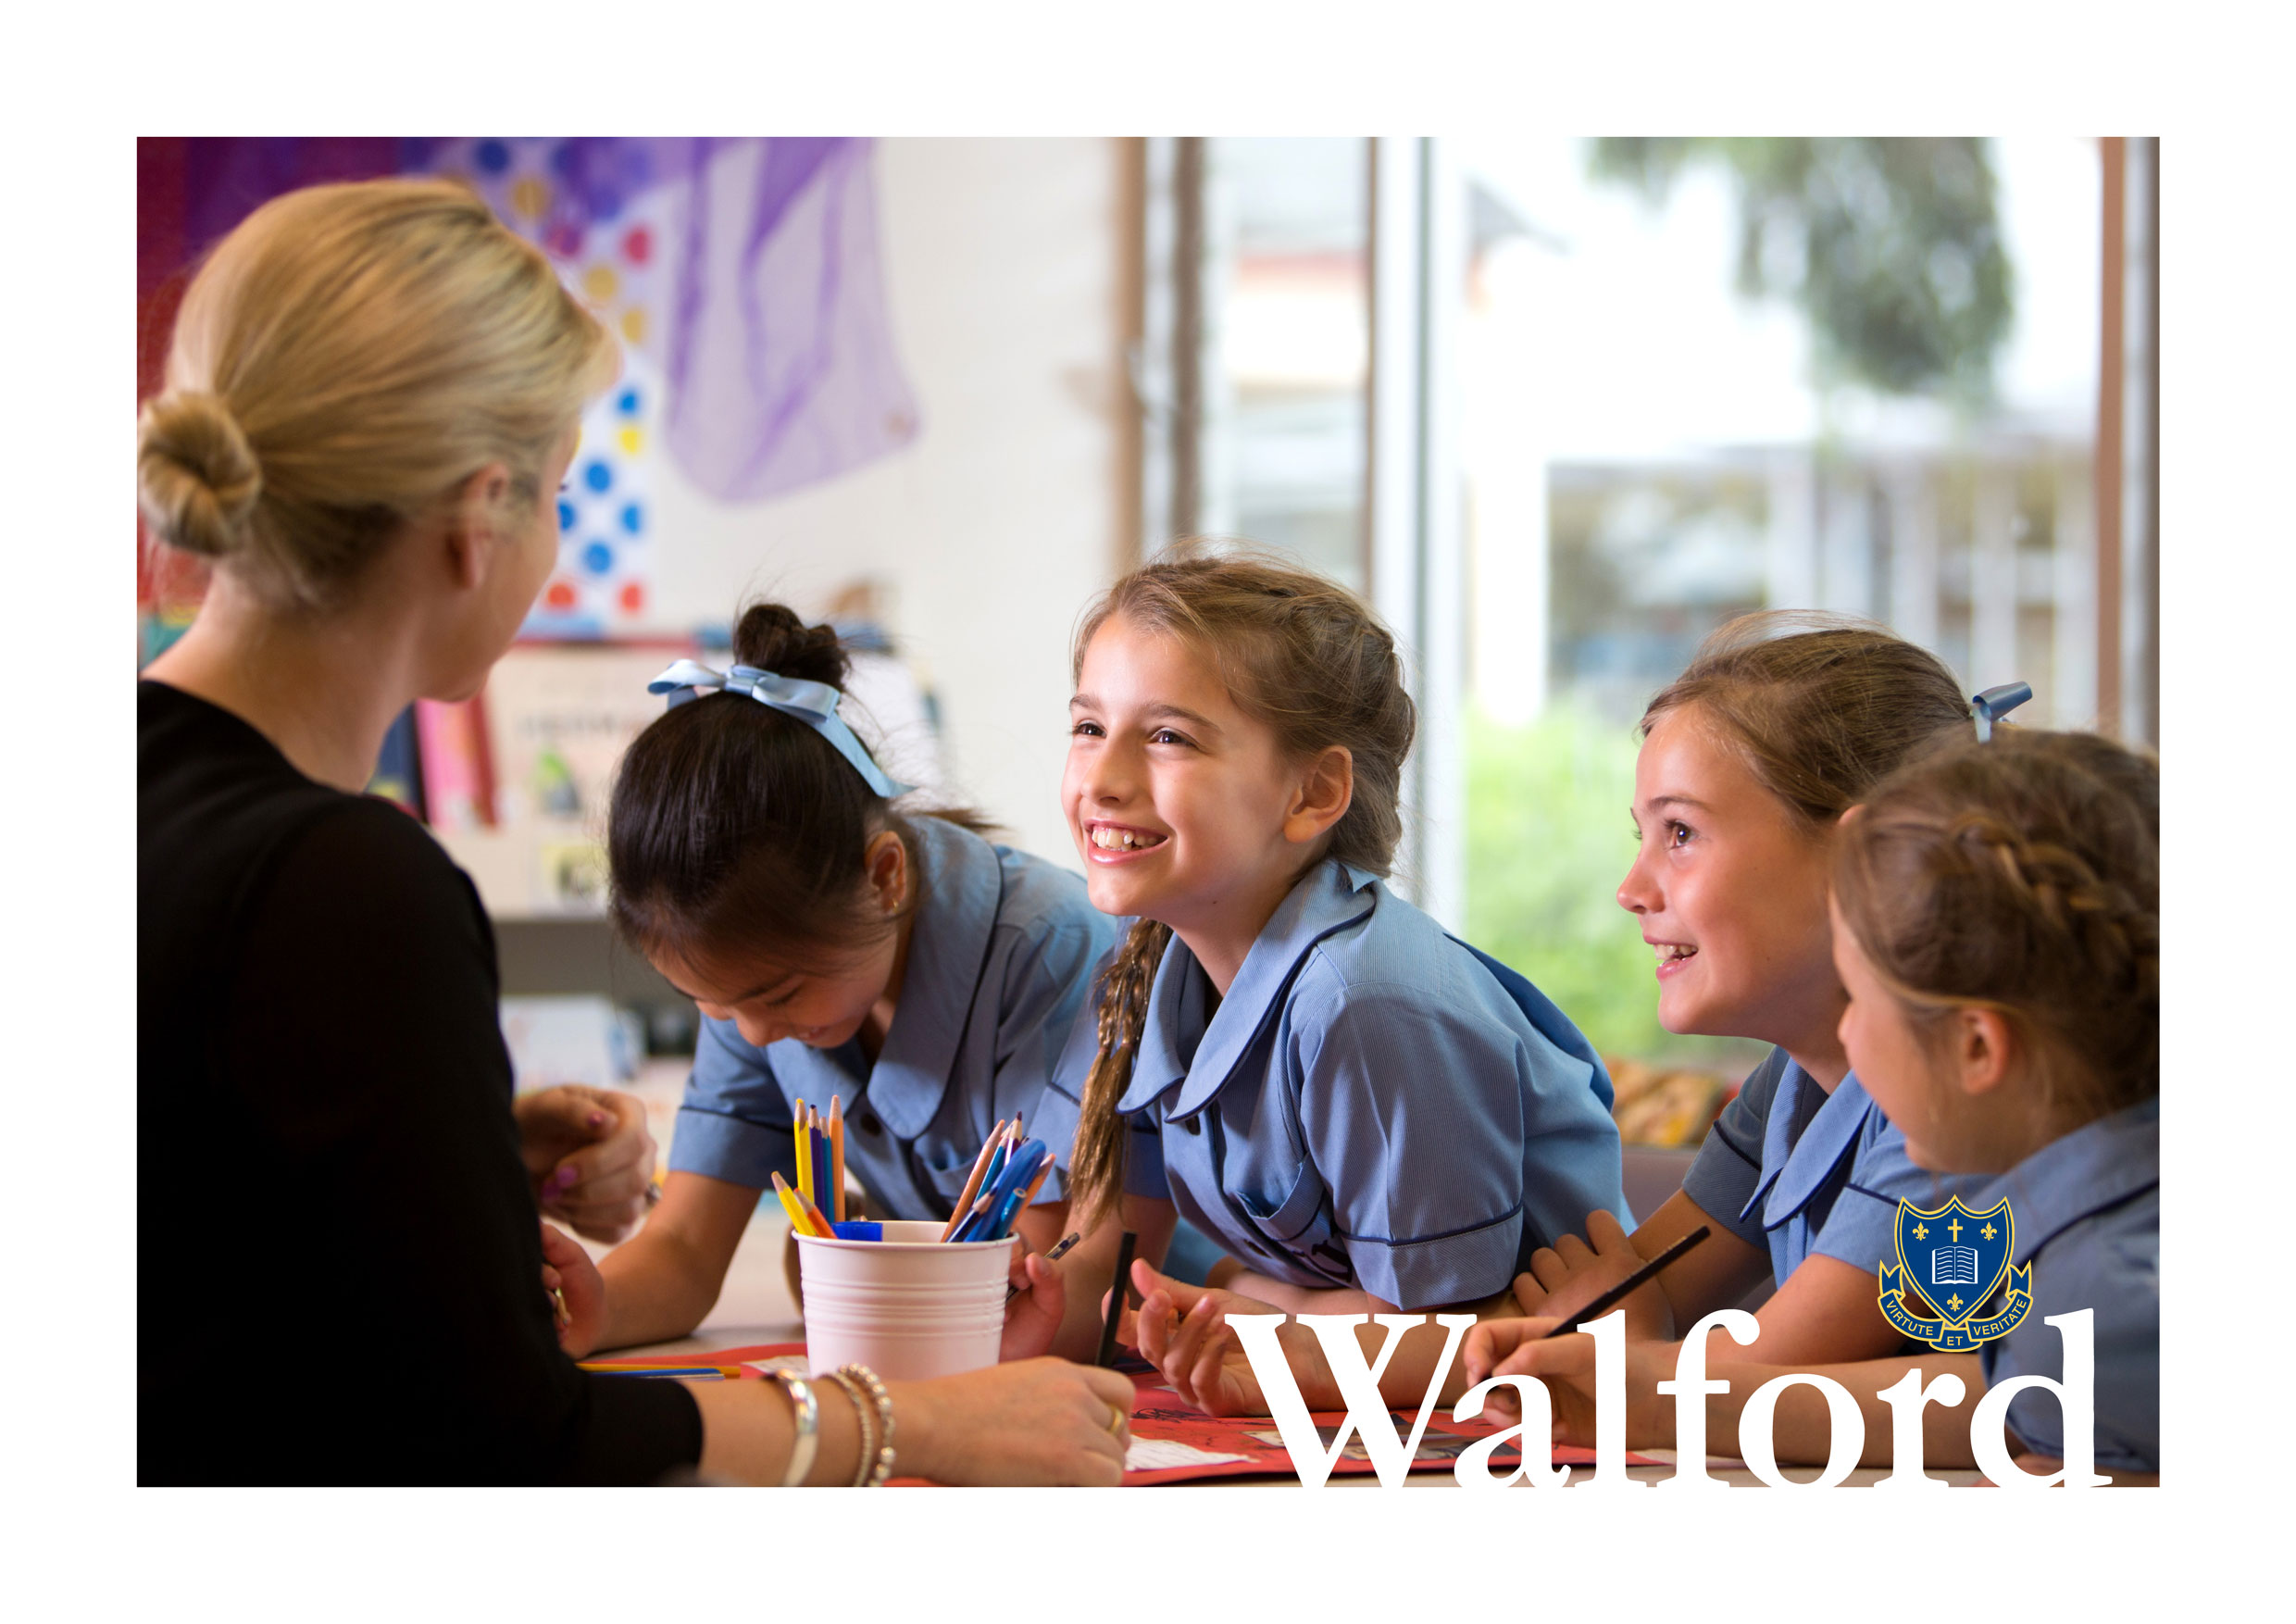 WALFORD-BRANDING-IMAGES_15